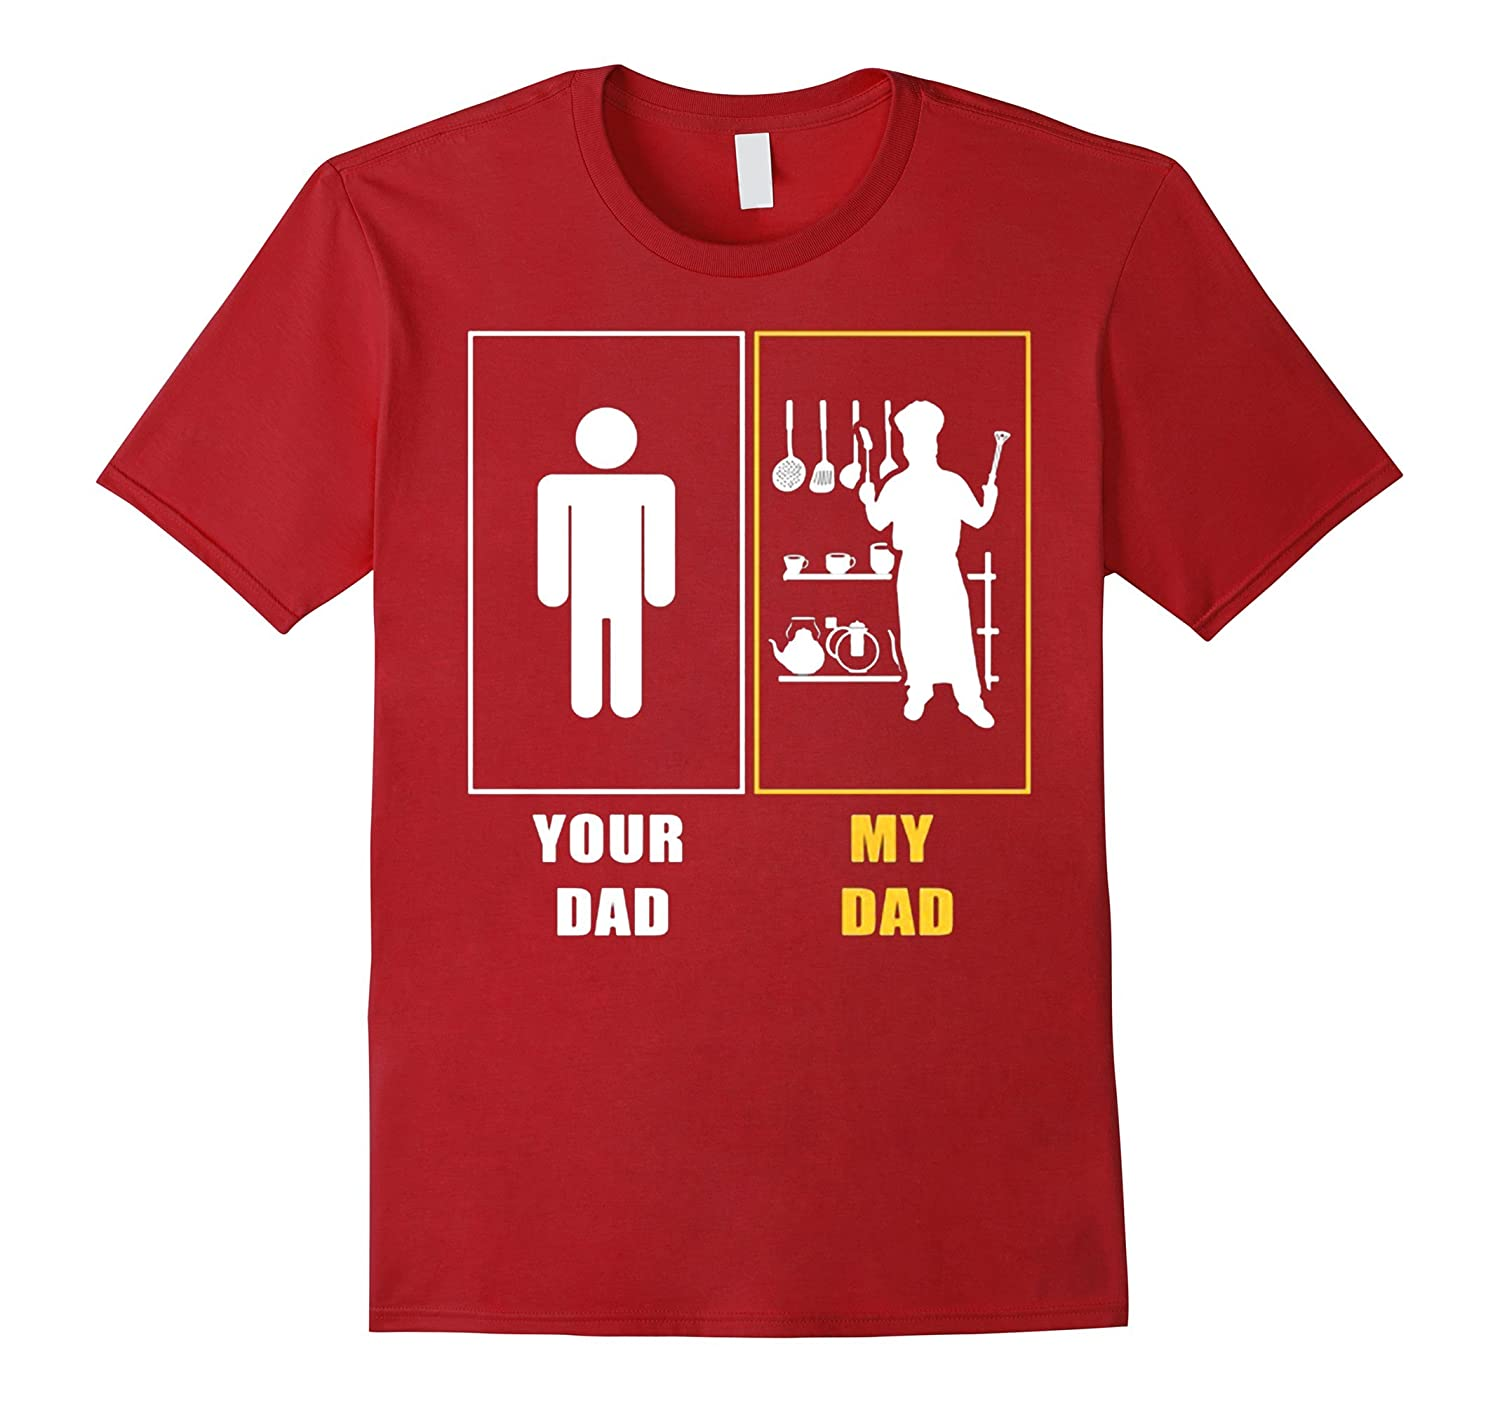 My Dad is a Chef T-Shirt Your Dad vs My Dad Shirt-TH